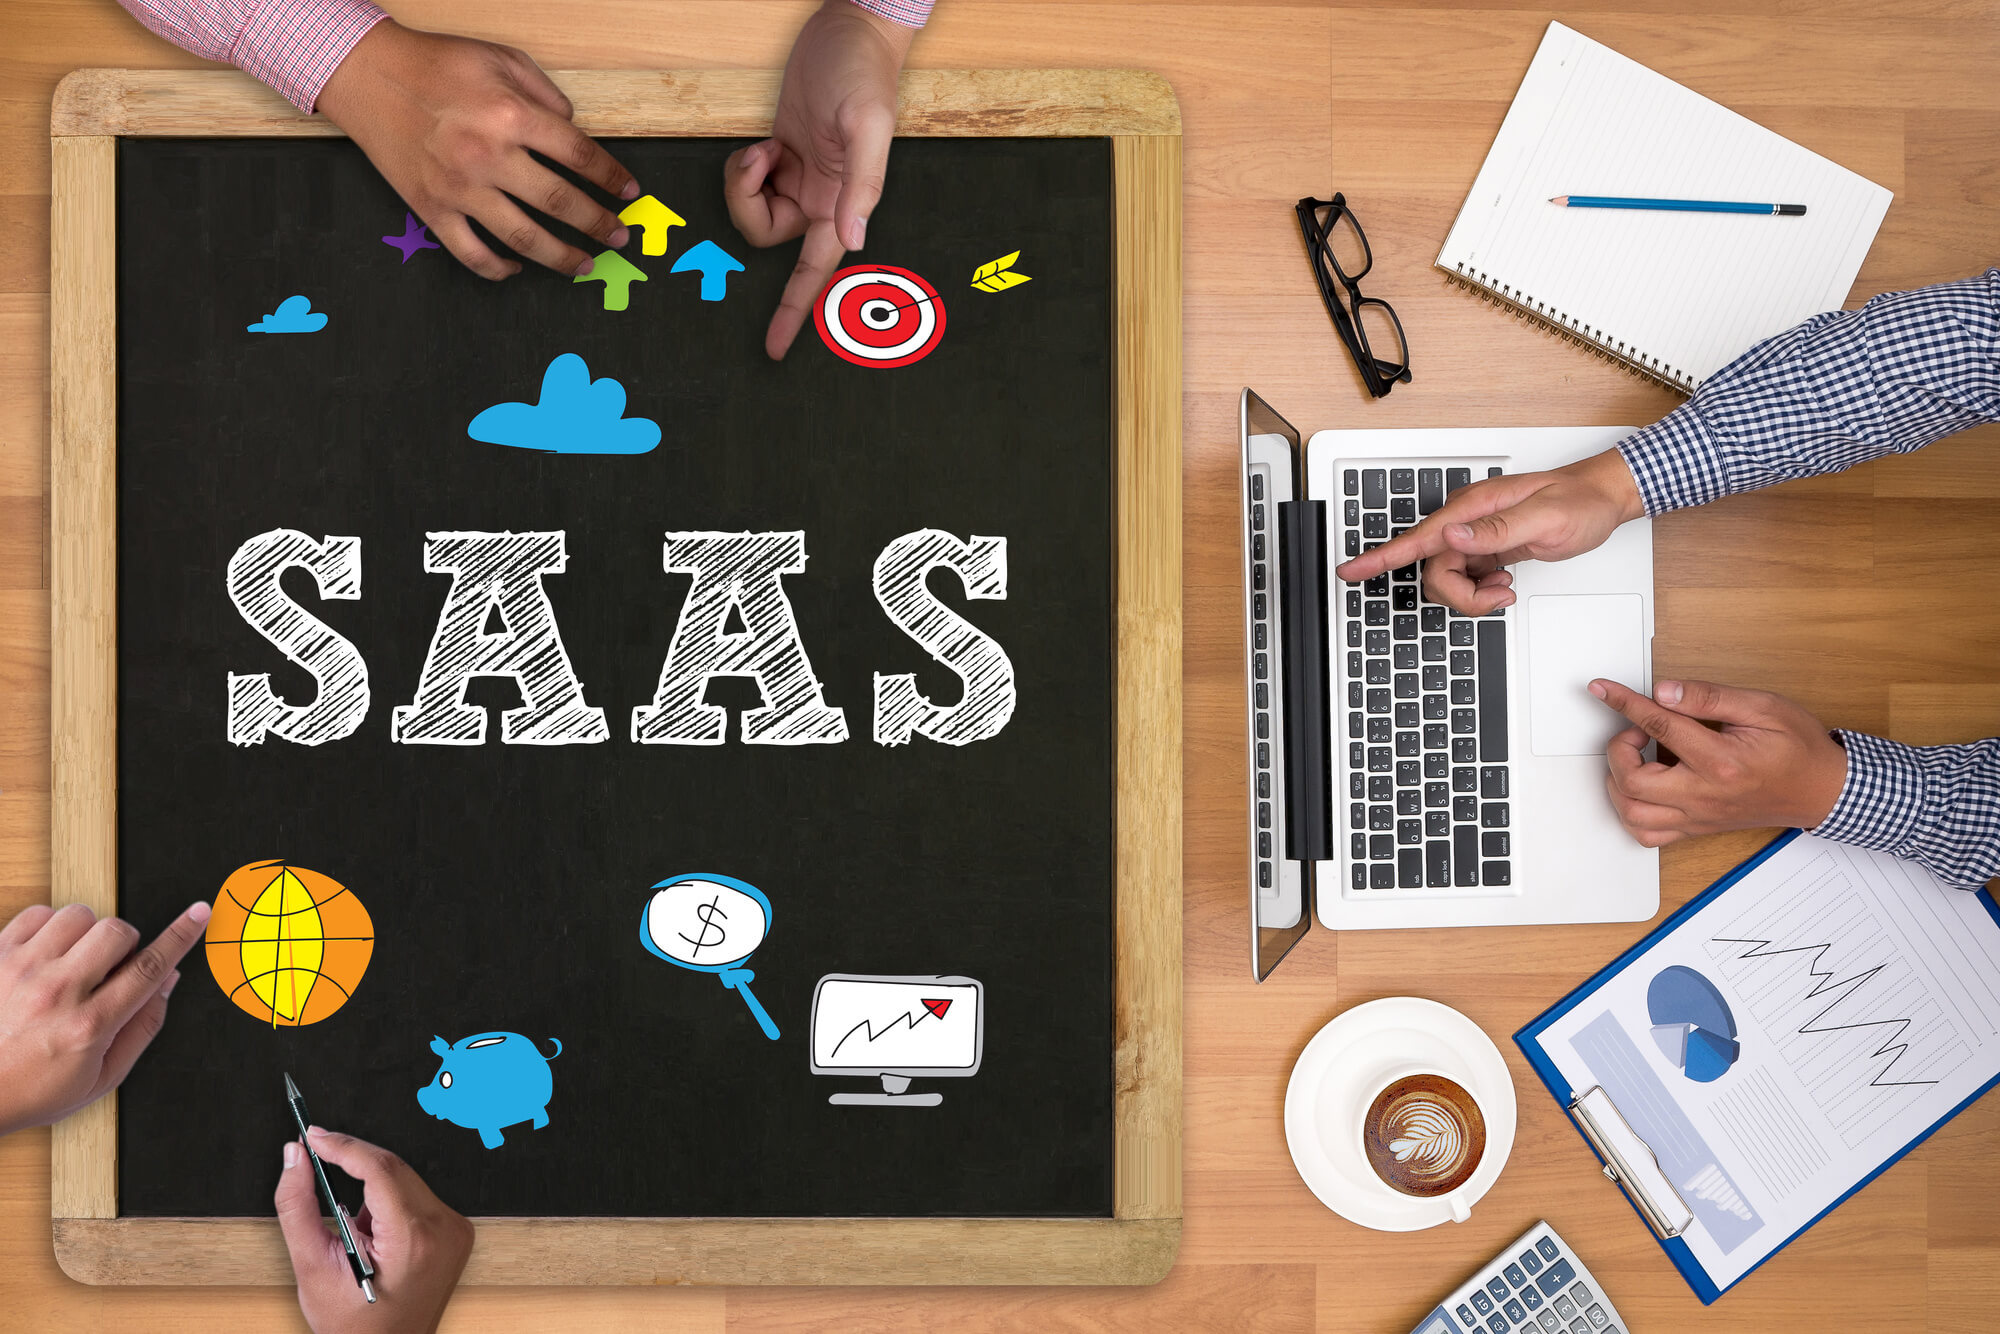 ITaaS vs. Saas: Which Is Right for Your Business?